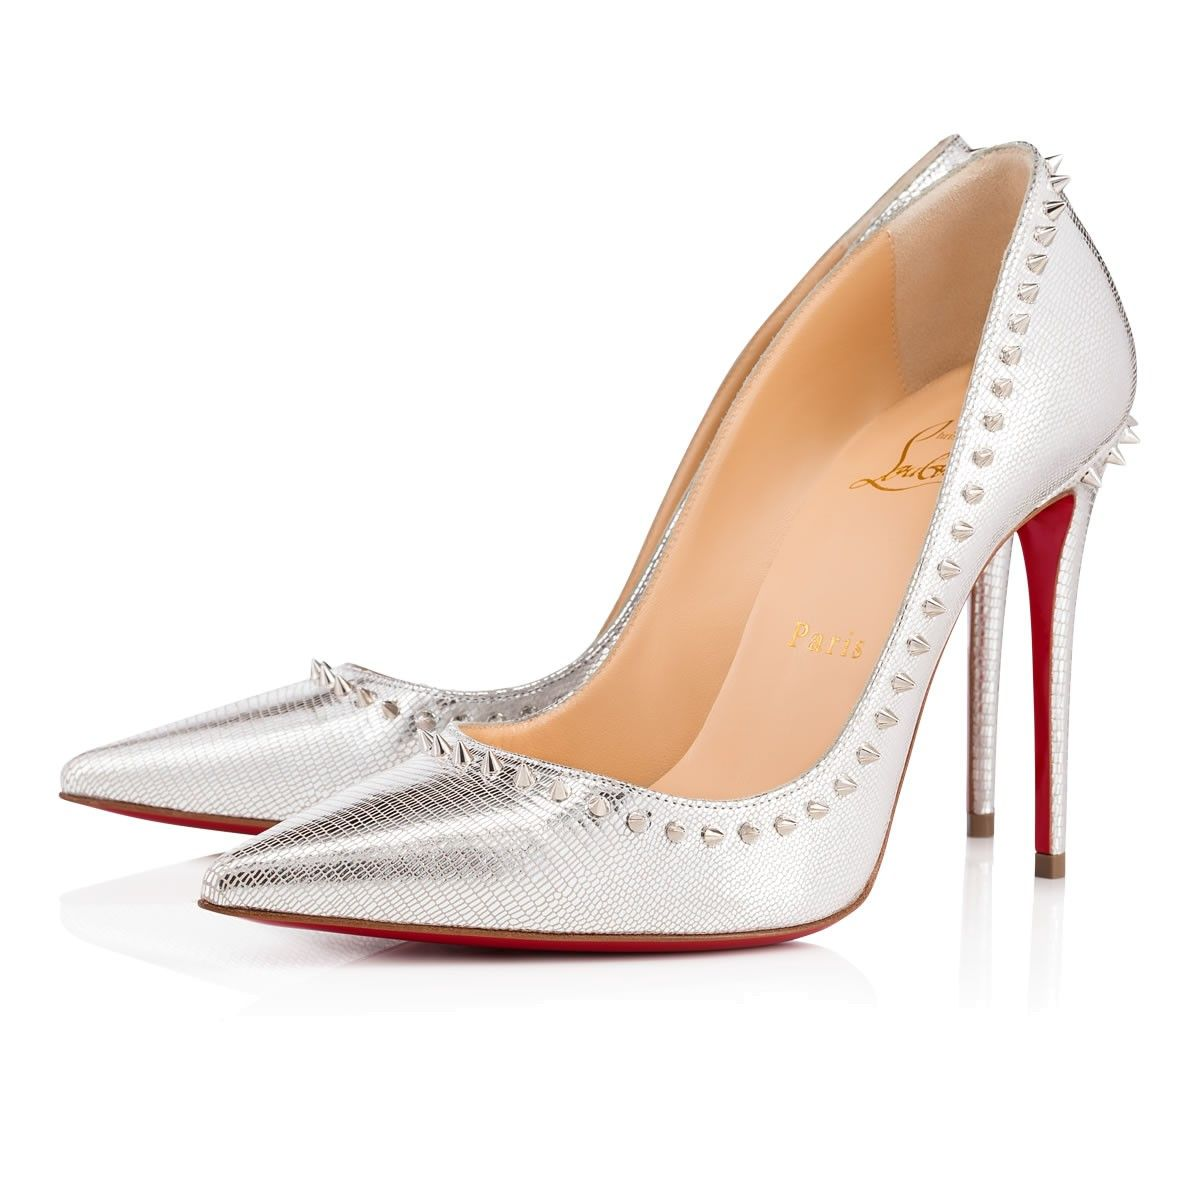 32f86819930 CHRISTIAN LOUBOUTIN . #christianlouboutin #shoes # | Christian ...